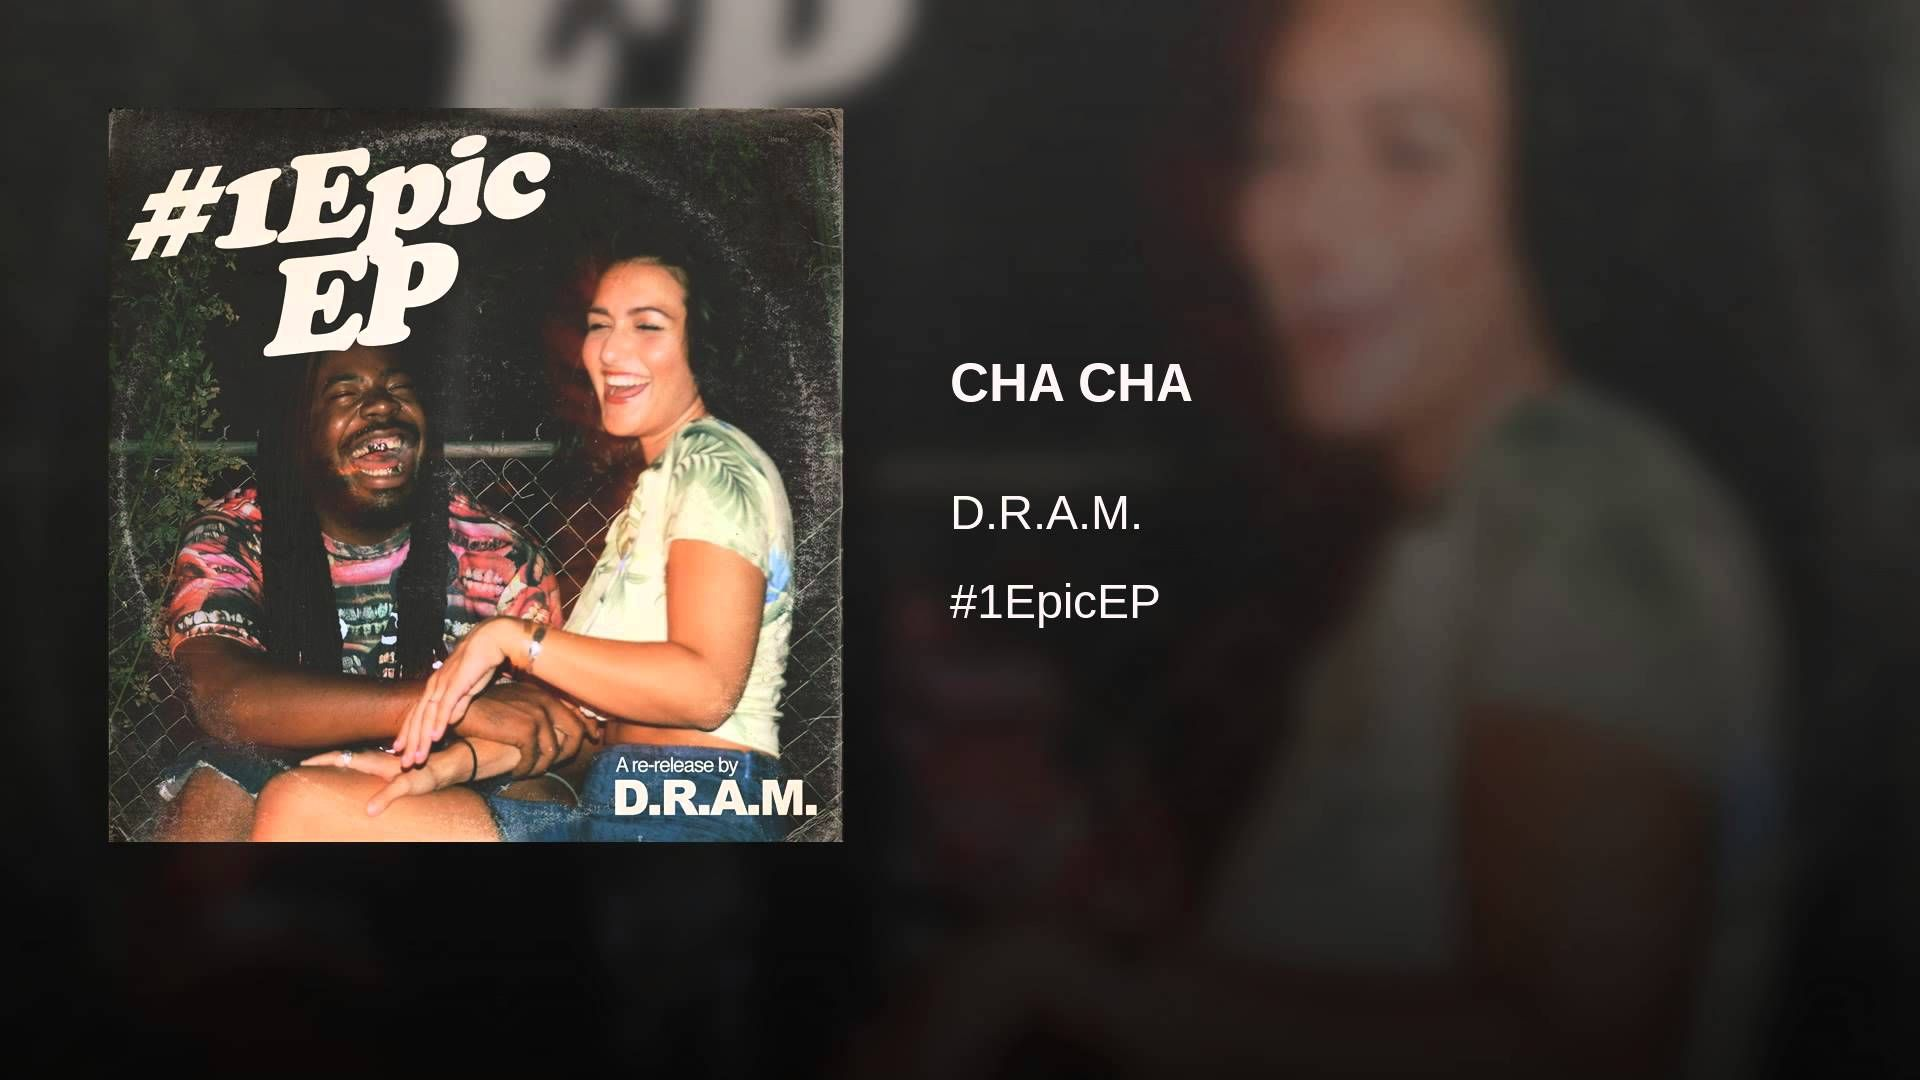 Discussion on this topic: Lucille Soong, cha-cha-rapper/